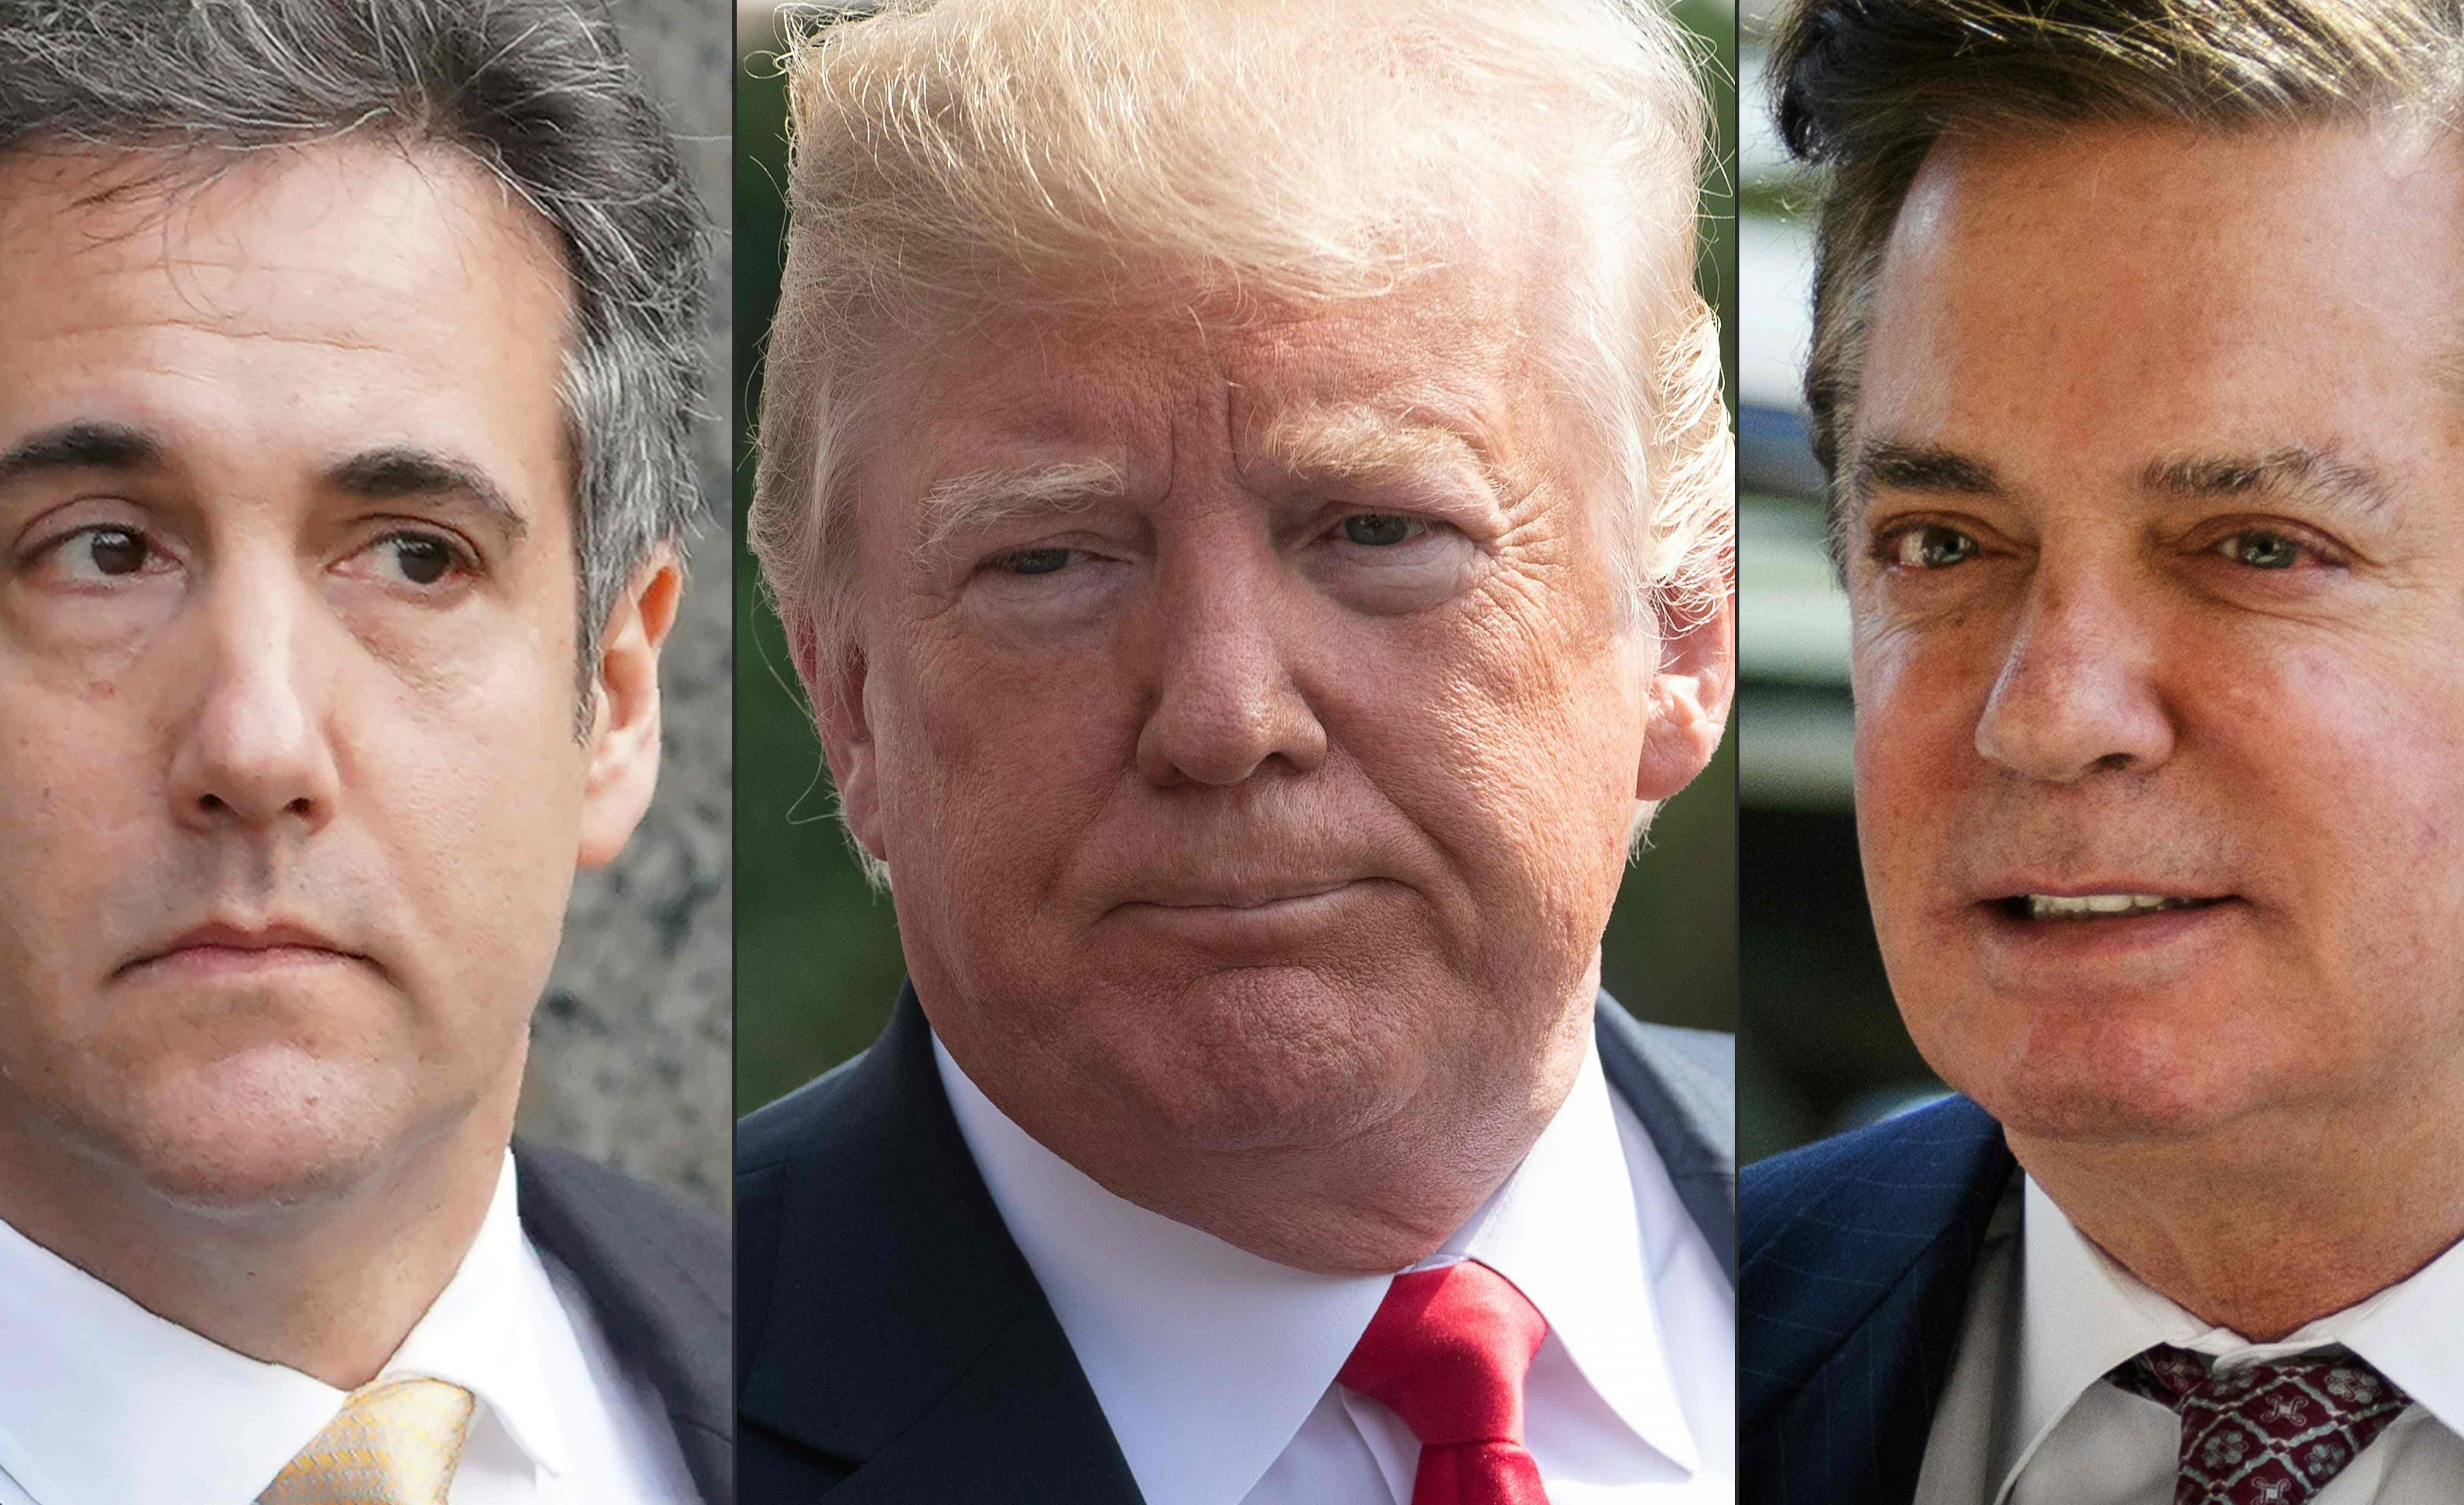 Former Trump lawyer Michael Cohen, President Donald Trump, and former Trump campaign Manager Paul Manafort.